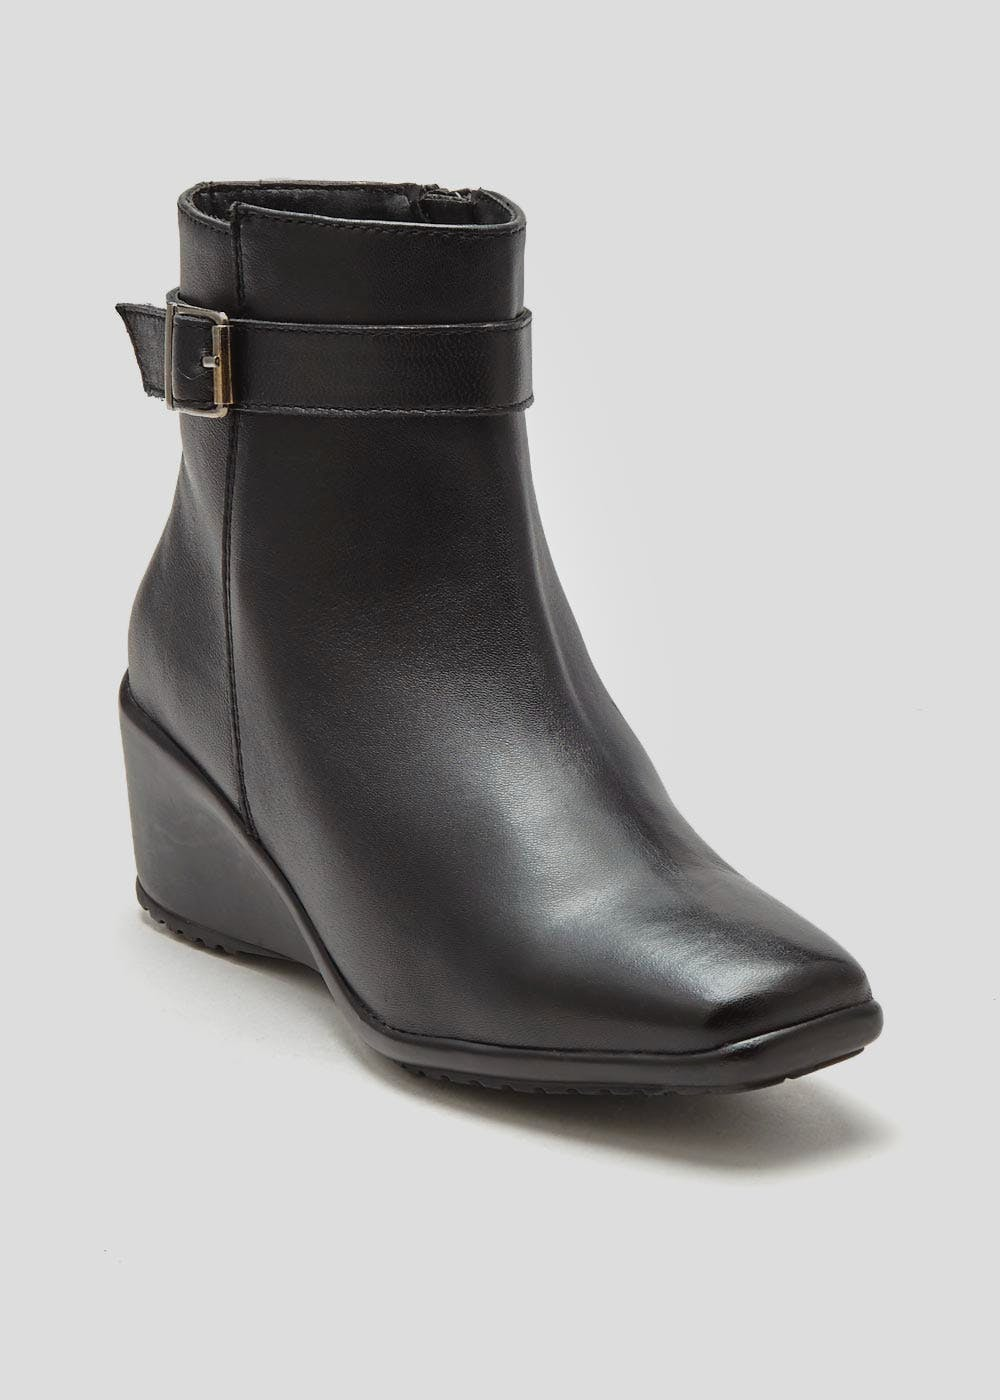 1bc29223bf62 Soleflex Real Leather Wedge Ankle Boots – Black – Matalan